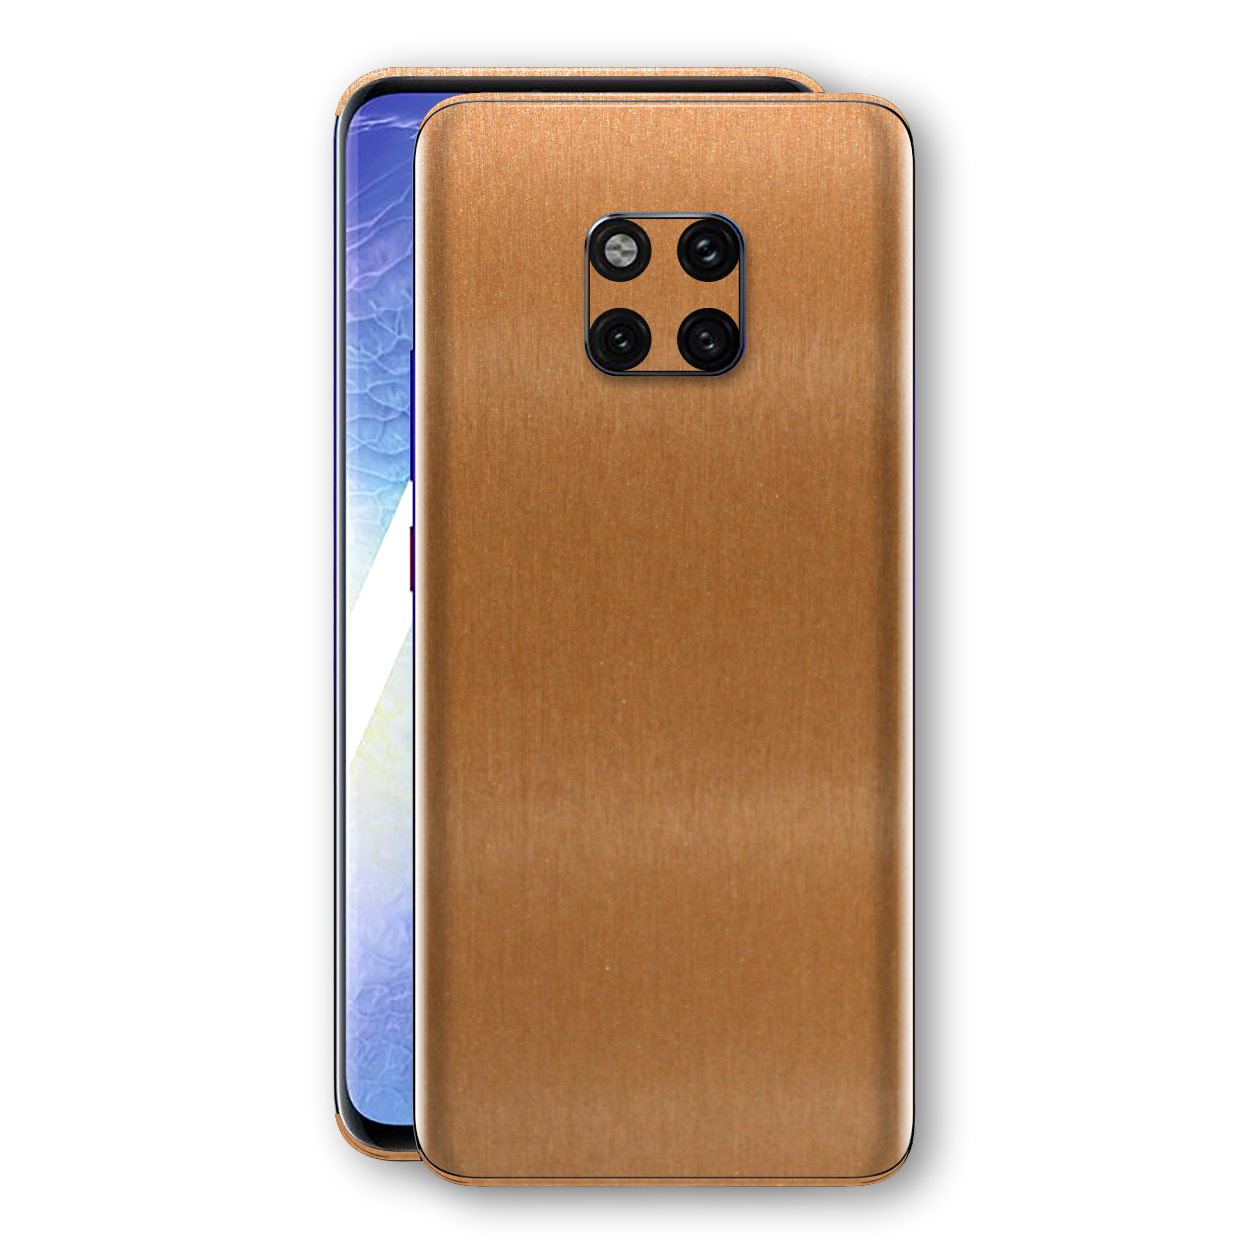 Huawei MATE 20 PRO Brushed Copper Metallic Metal Skin, Decal, Wrap, Protector, Cover by EasySkinz | EasySkinz.com